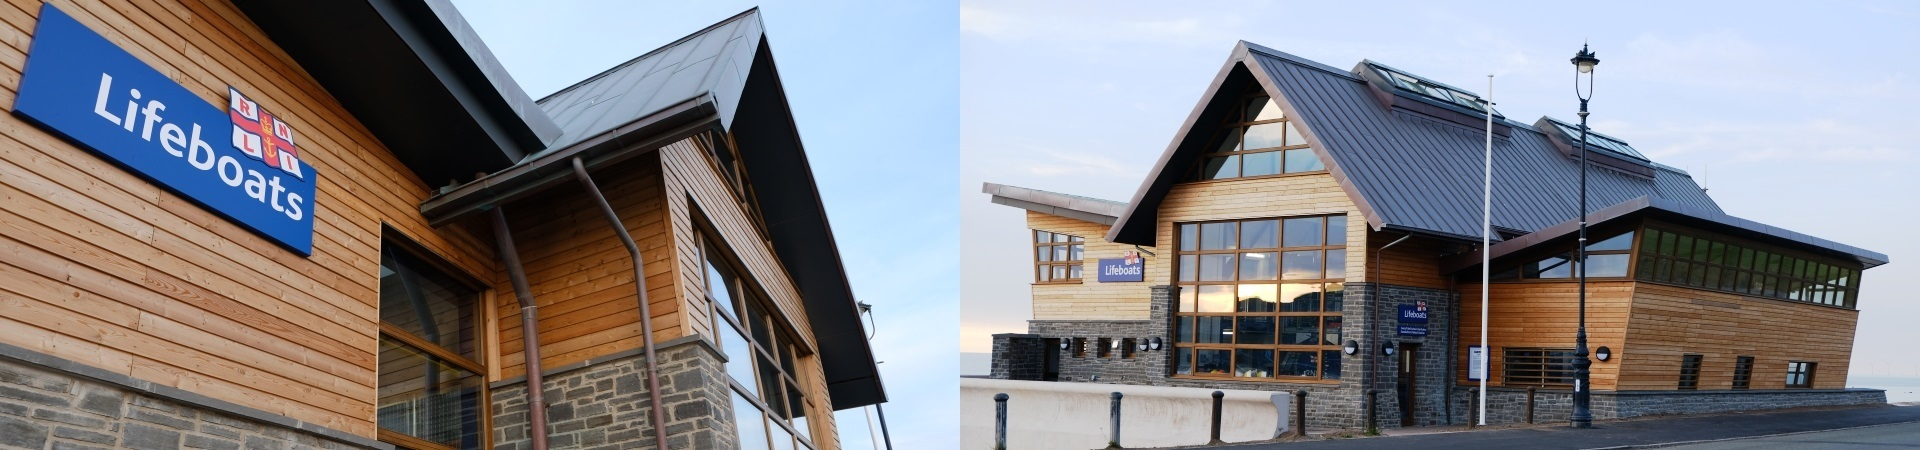 RNLI Lifeboat Station: Llandudno | Wynne Construction